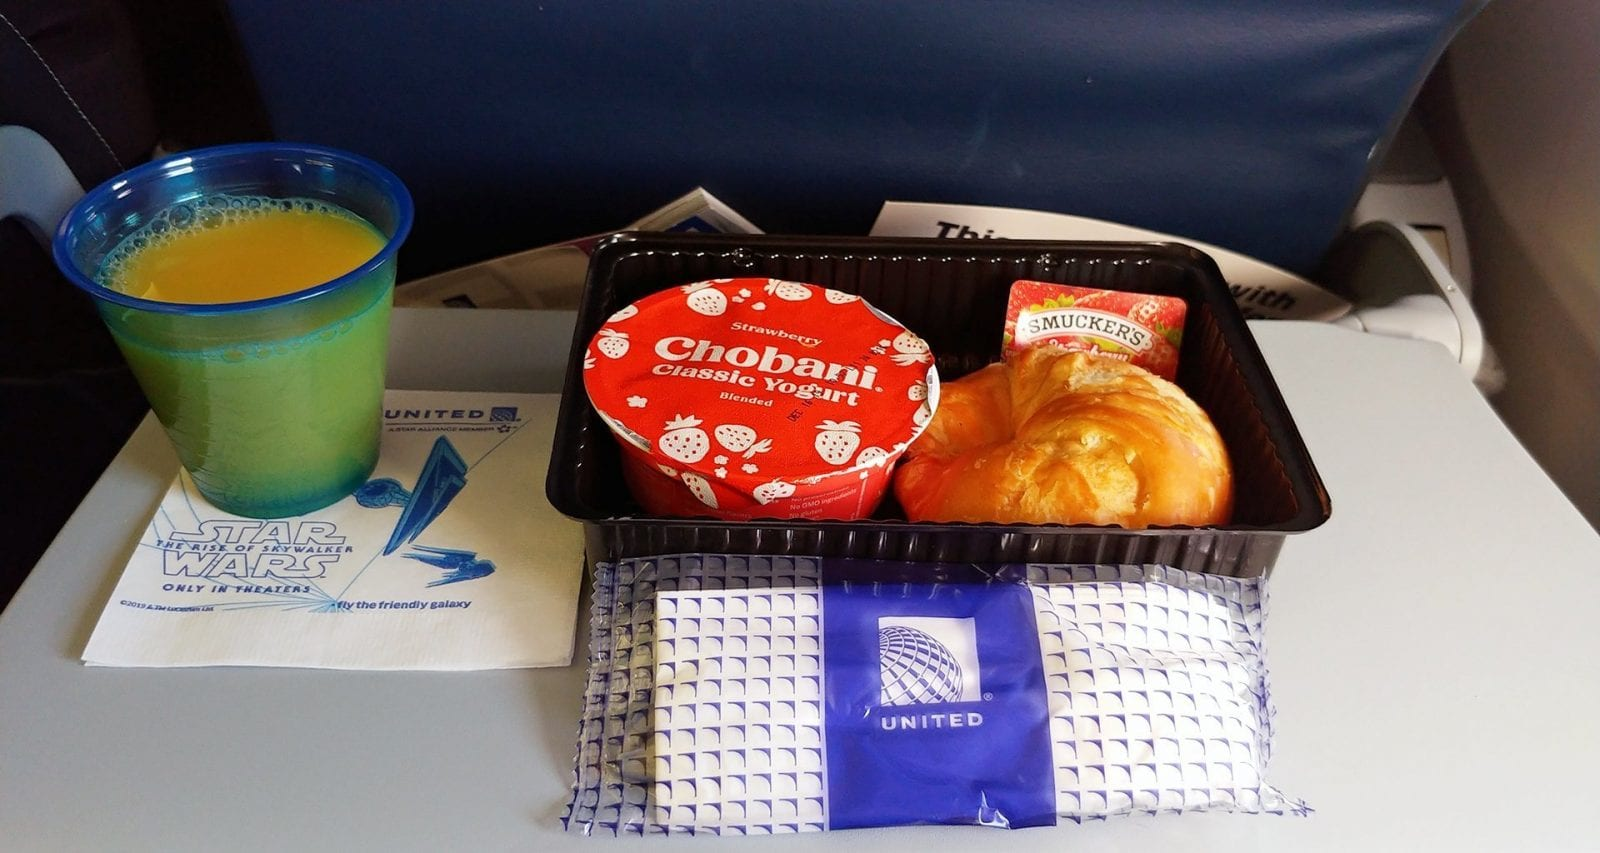 United Airlines economy class breakfast prior to arrival